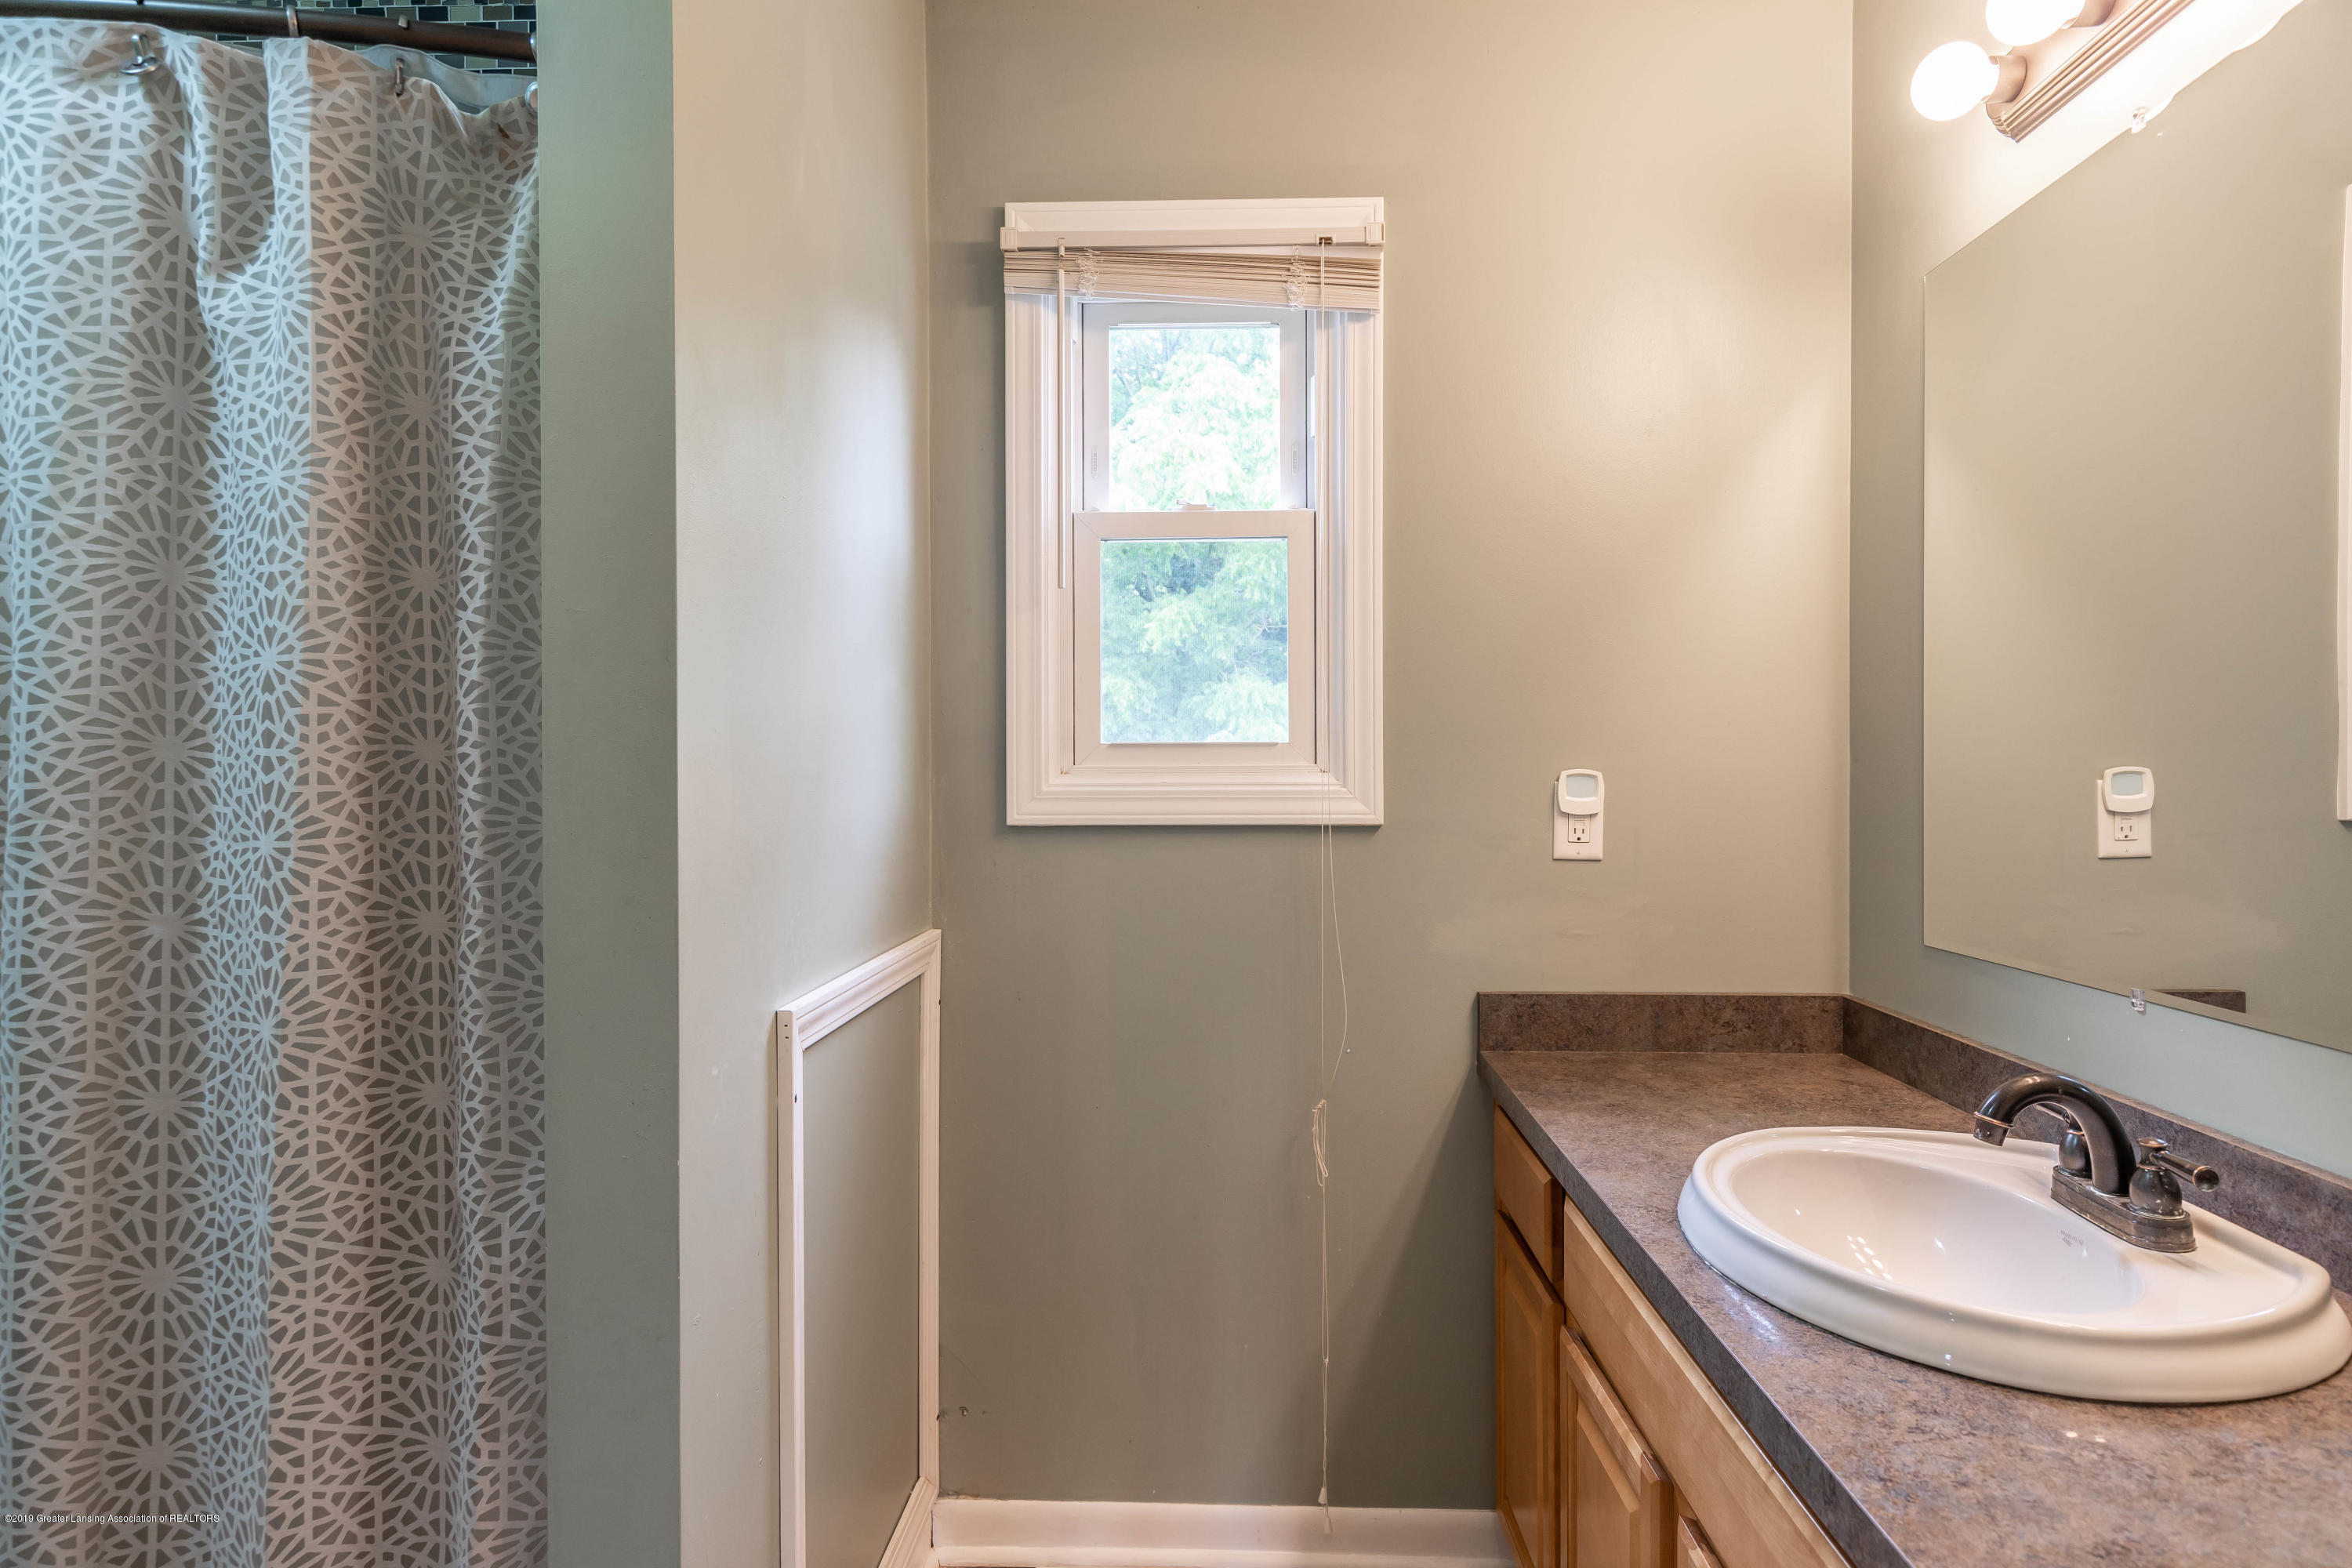 2497 Graystone Dr - 18. Upstairs Bath 2 - 22